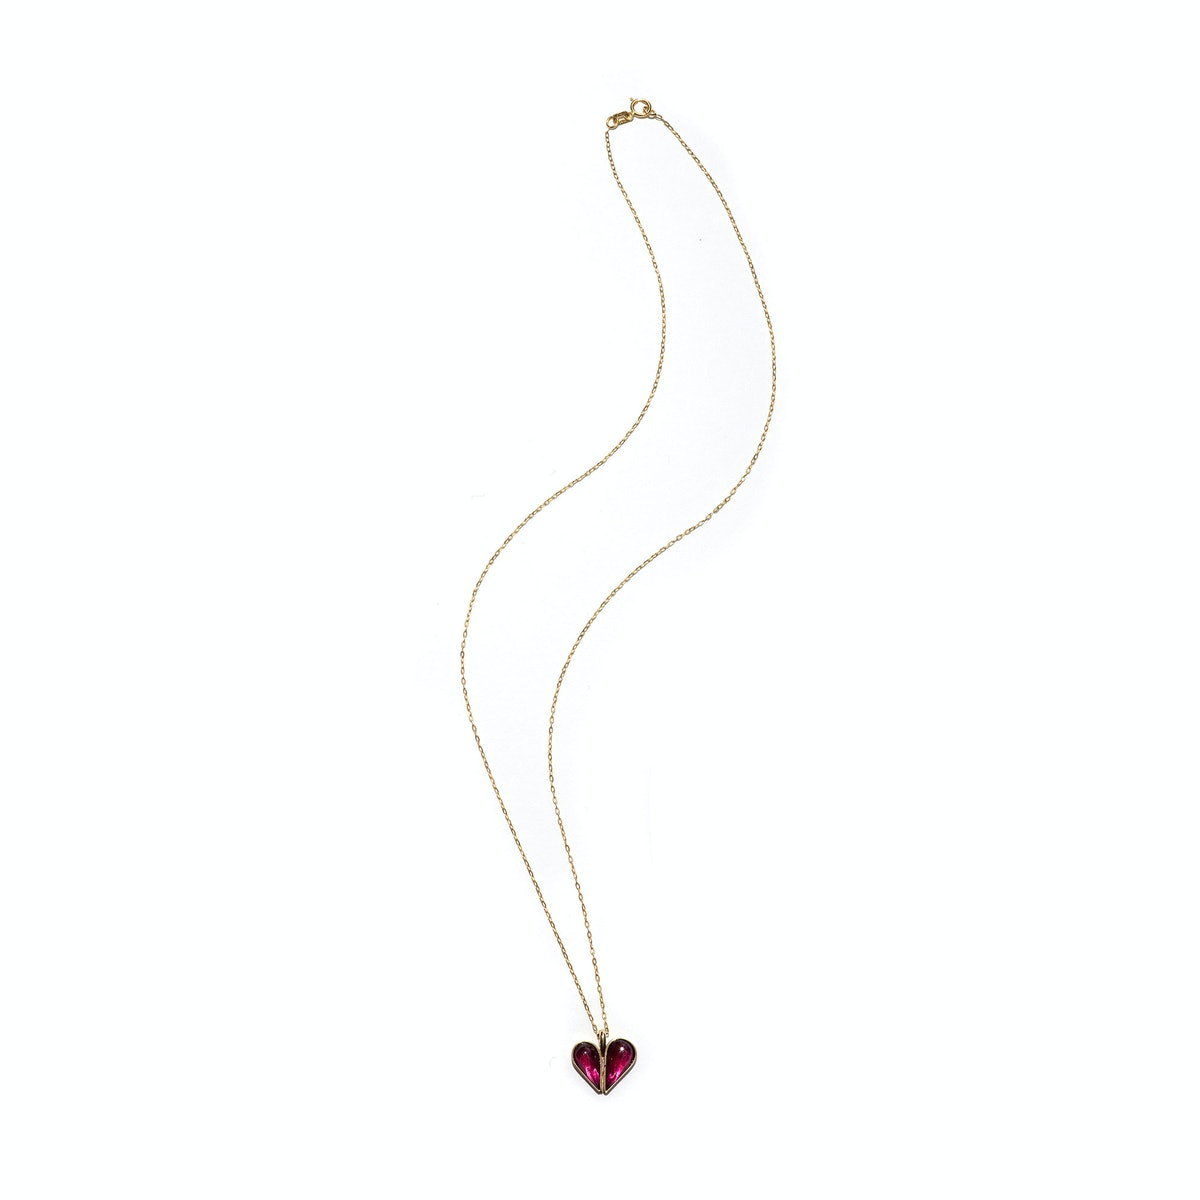 Gaia-is-Love-gold-and-ruby-necklace,-$575,-at-gaiaislove.com